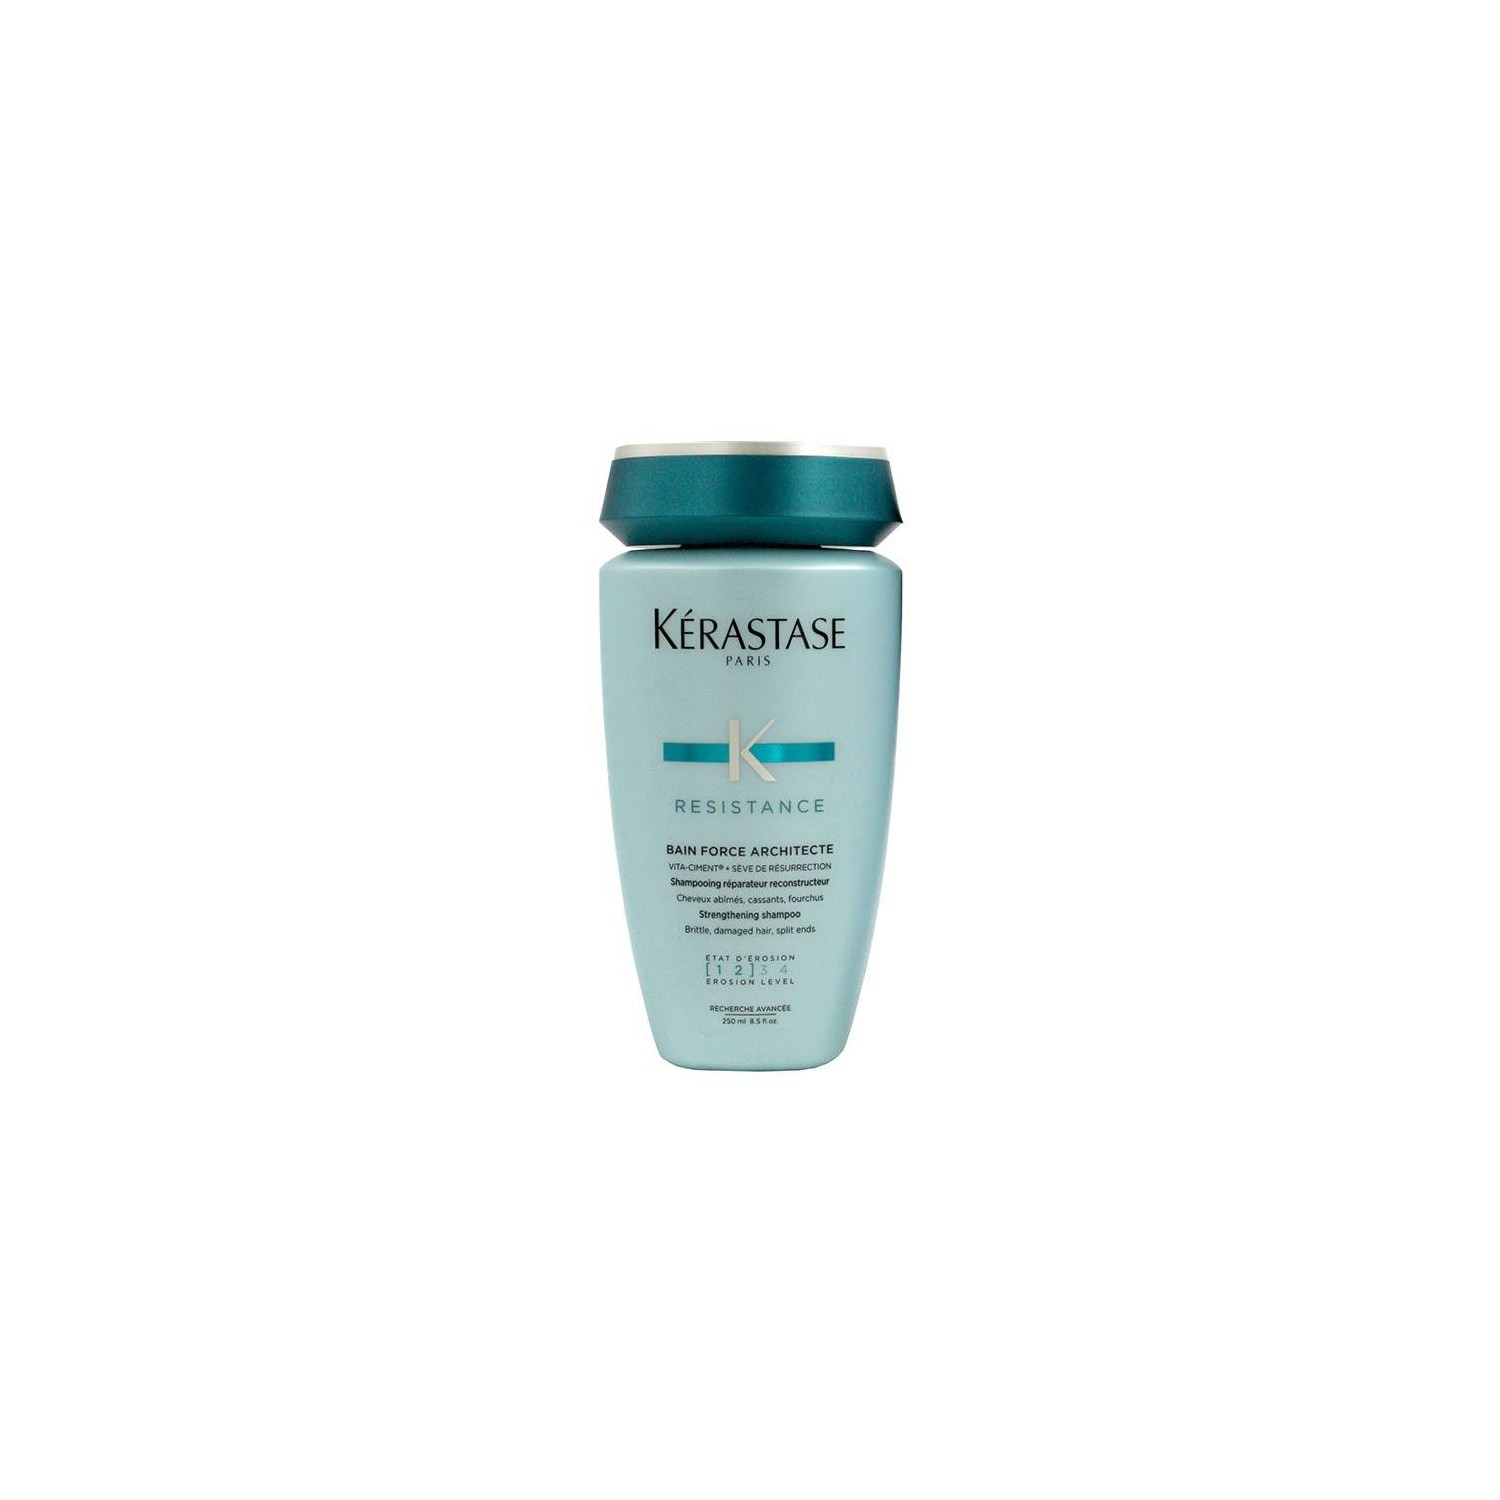 Kerastase Resistance Shampoo Bain Force Architecte 1-2 250 Ml